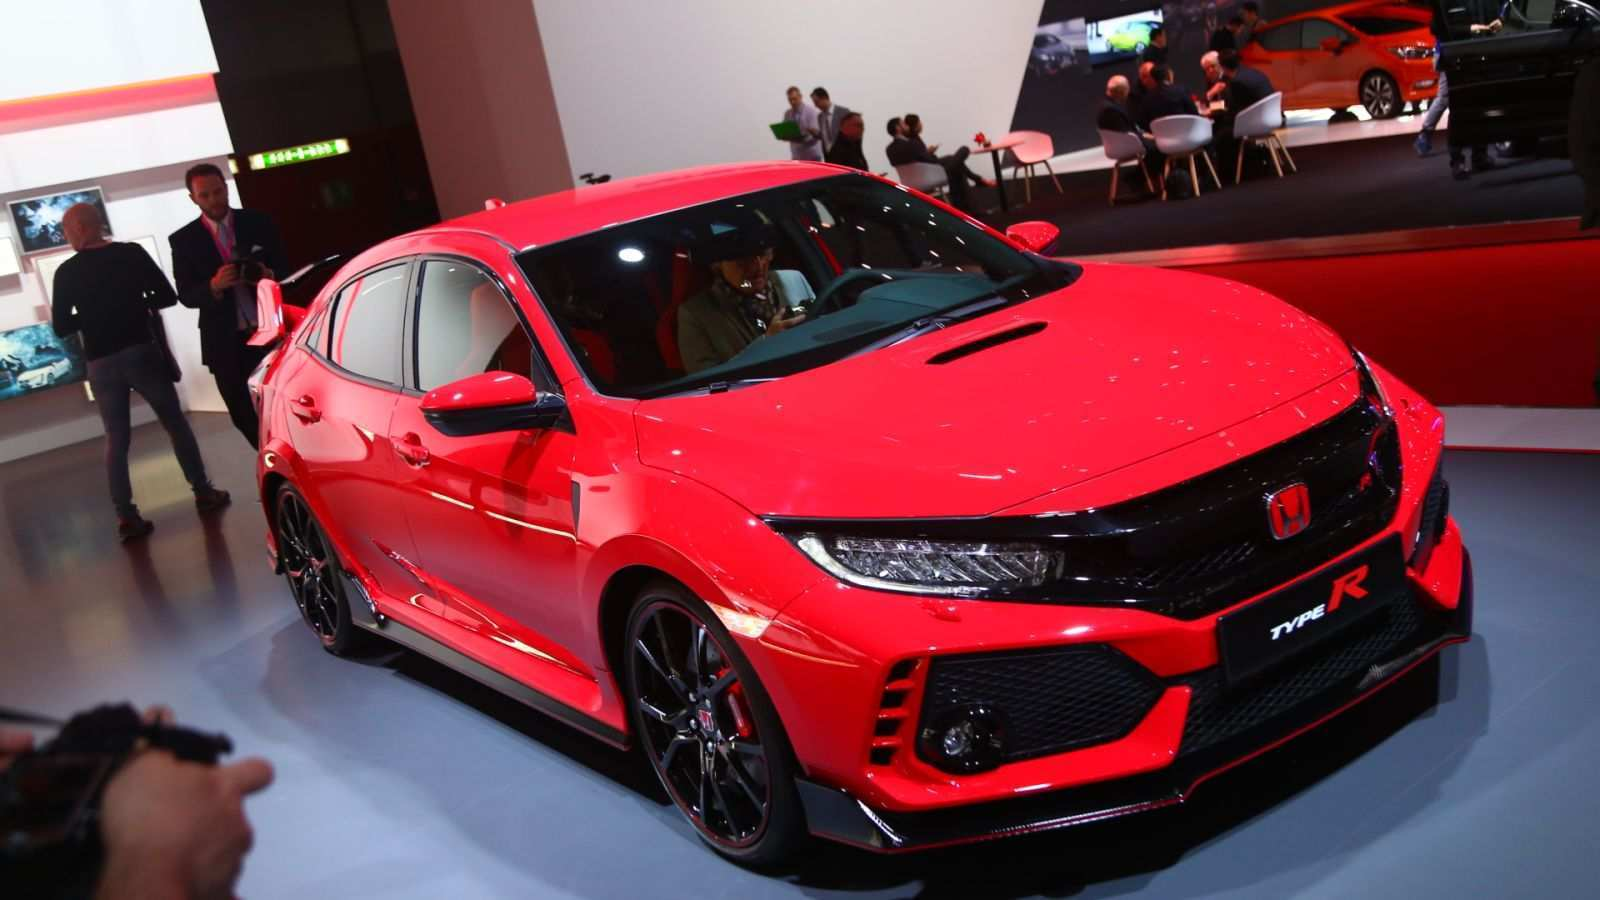 60 Best Review 2019 Honda Type R Specs and Review for 2019 Honda Type R